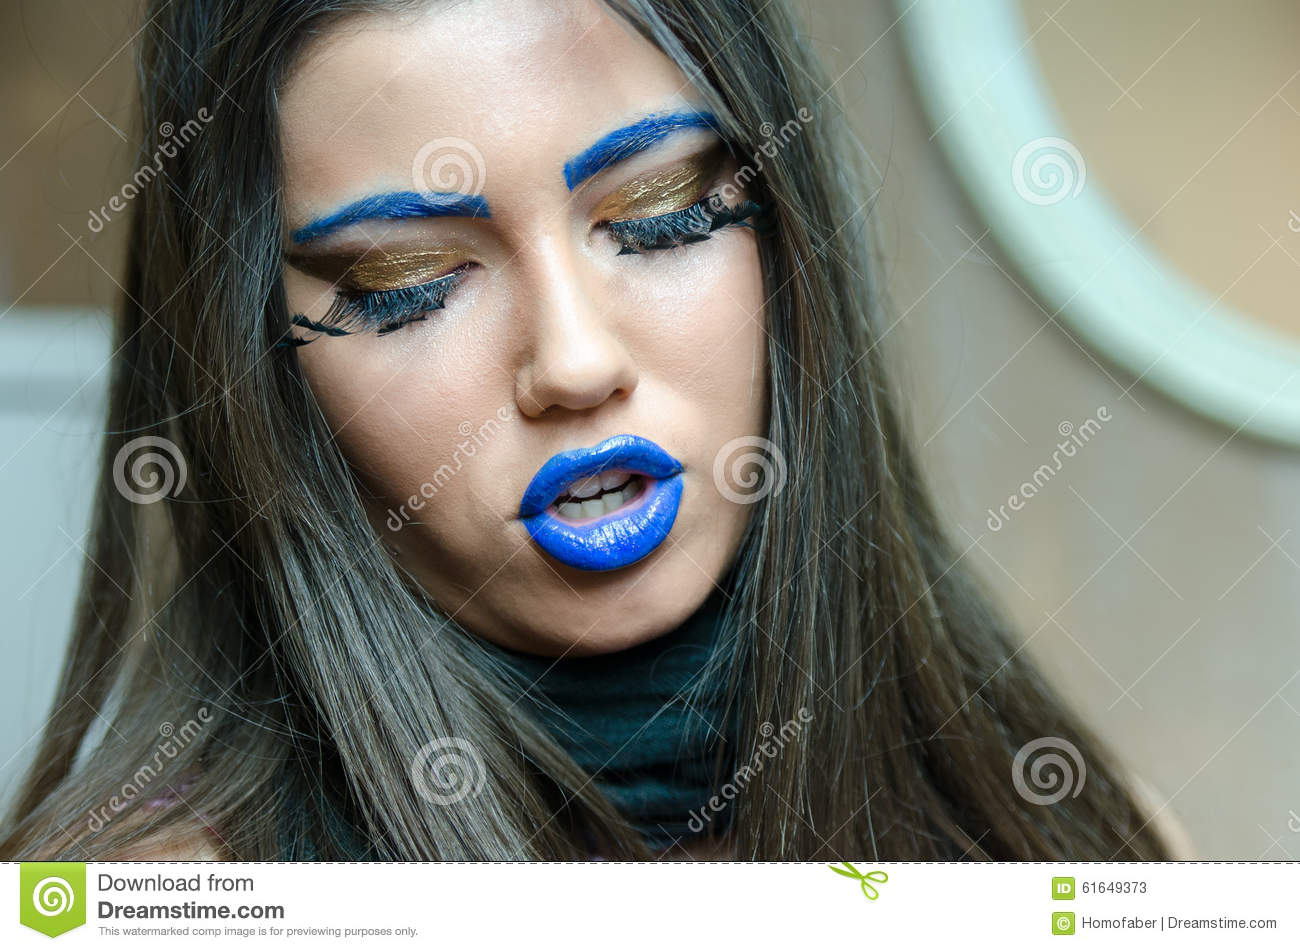 Woman With Blue Lipstick And Unique Makeup Stock Image Image Of